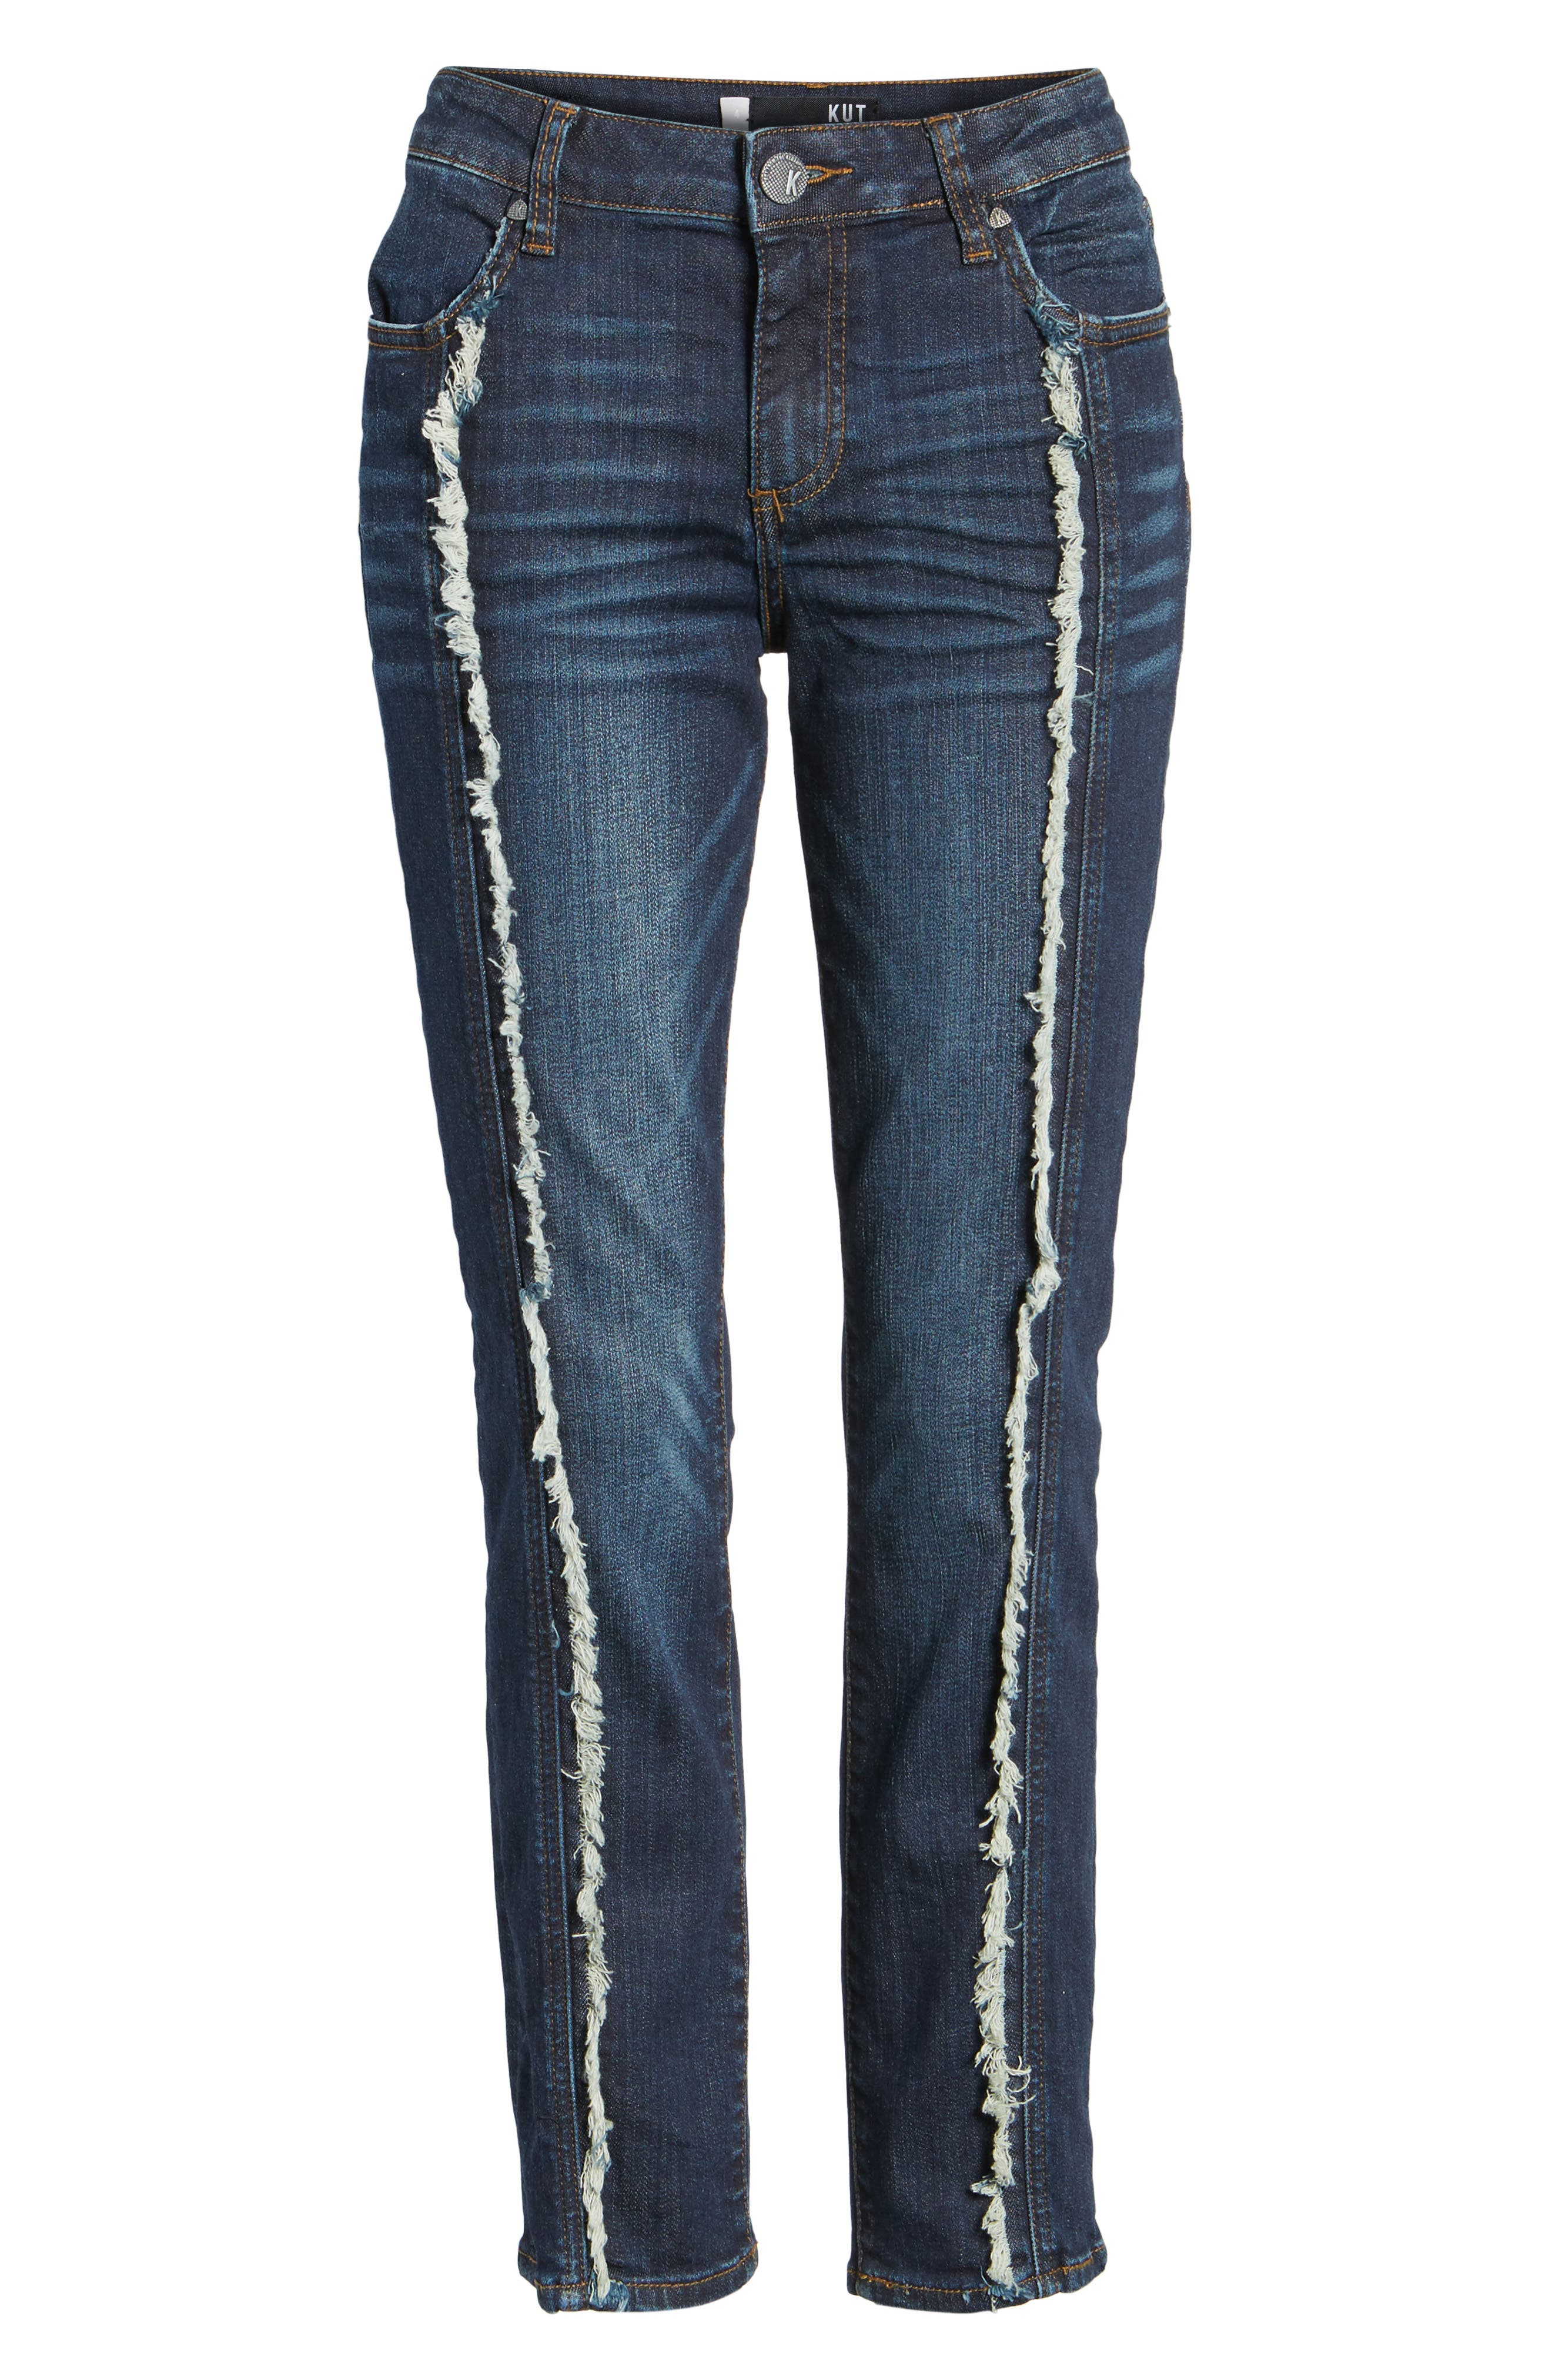 KUT FROM THE KLOTH,                             Reese Frayed Seam Ankle Straight Jeans,                             Alternate thumbnail 6, color,                             411